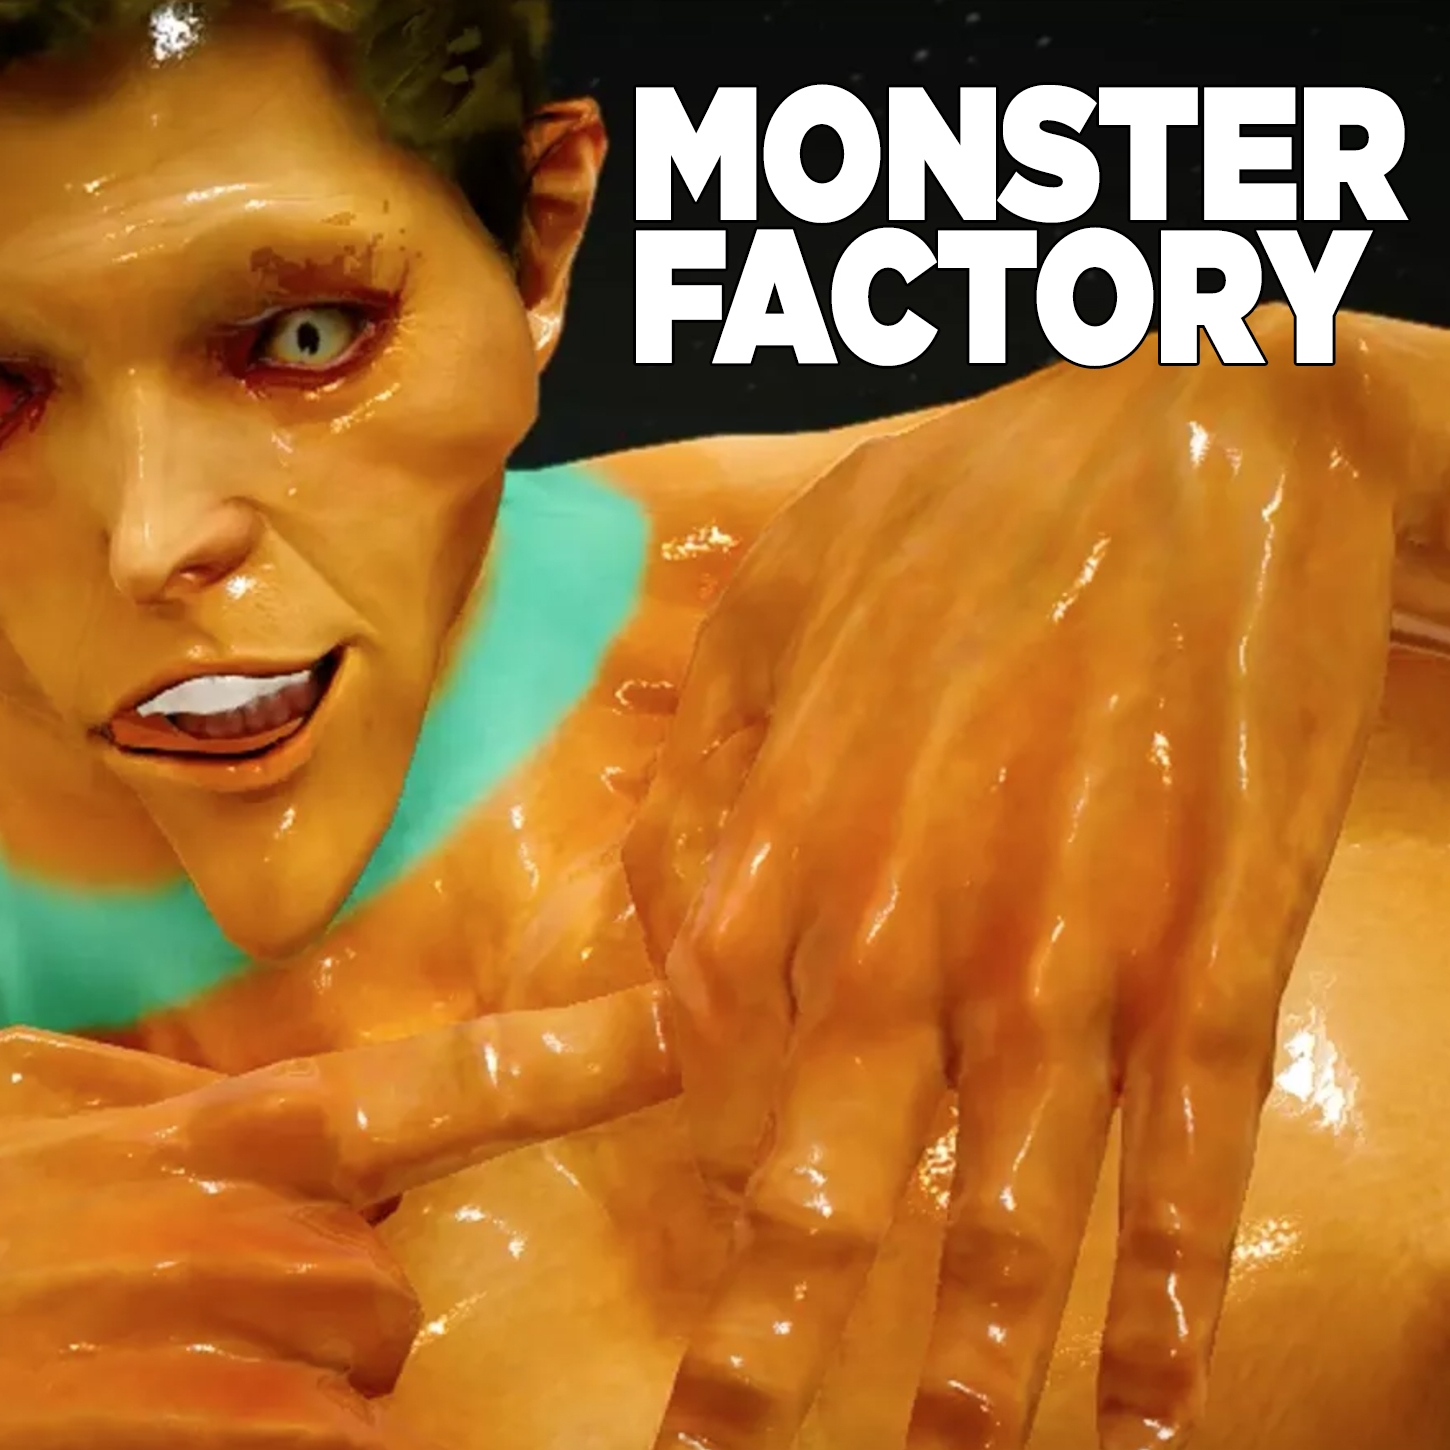 Monster Factory is a series on Polygon featuring myself and my brother Justin, in which we play video games with character creators and just really, really goof them right up. It's our most successful series on YouTube, despite the fact that it is often very challenging to watch.